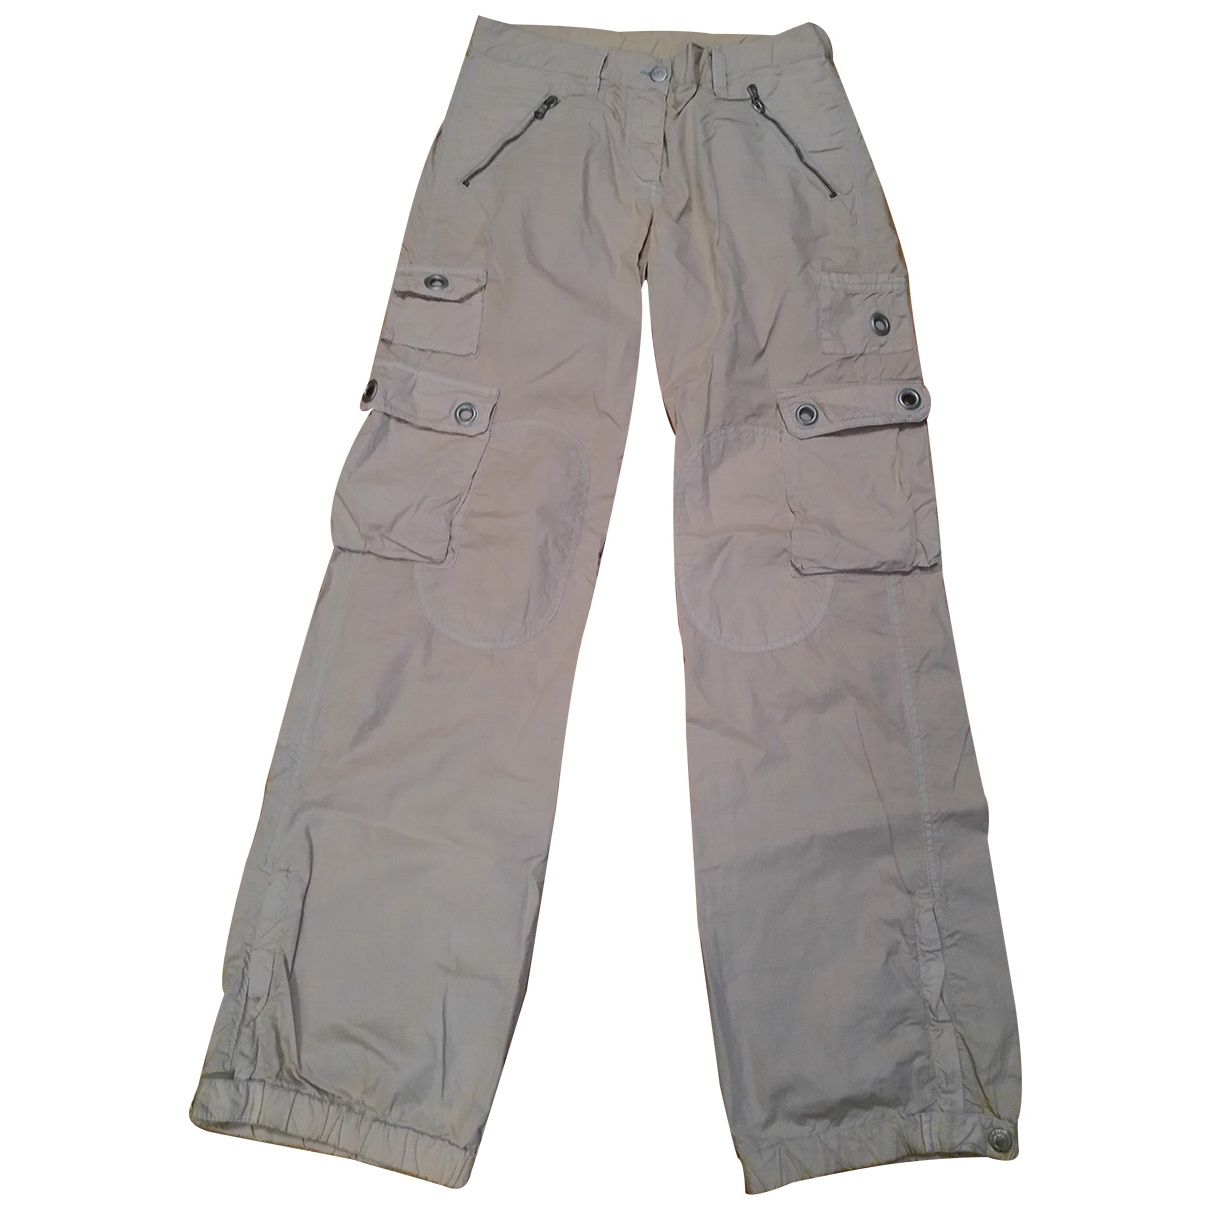 D&g \N Beige Cotton Trousers for Women 38 IT